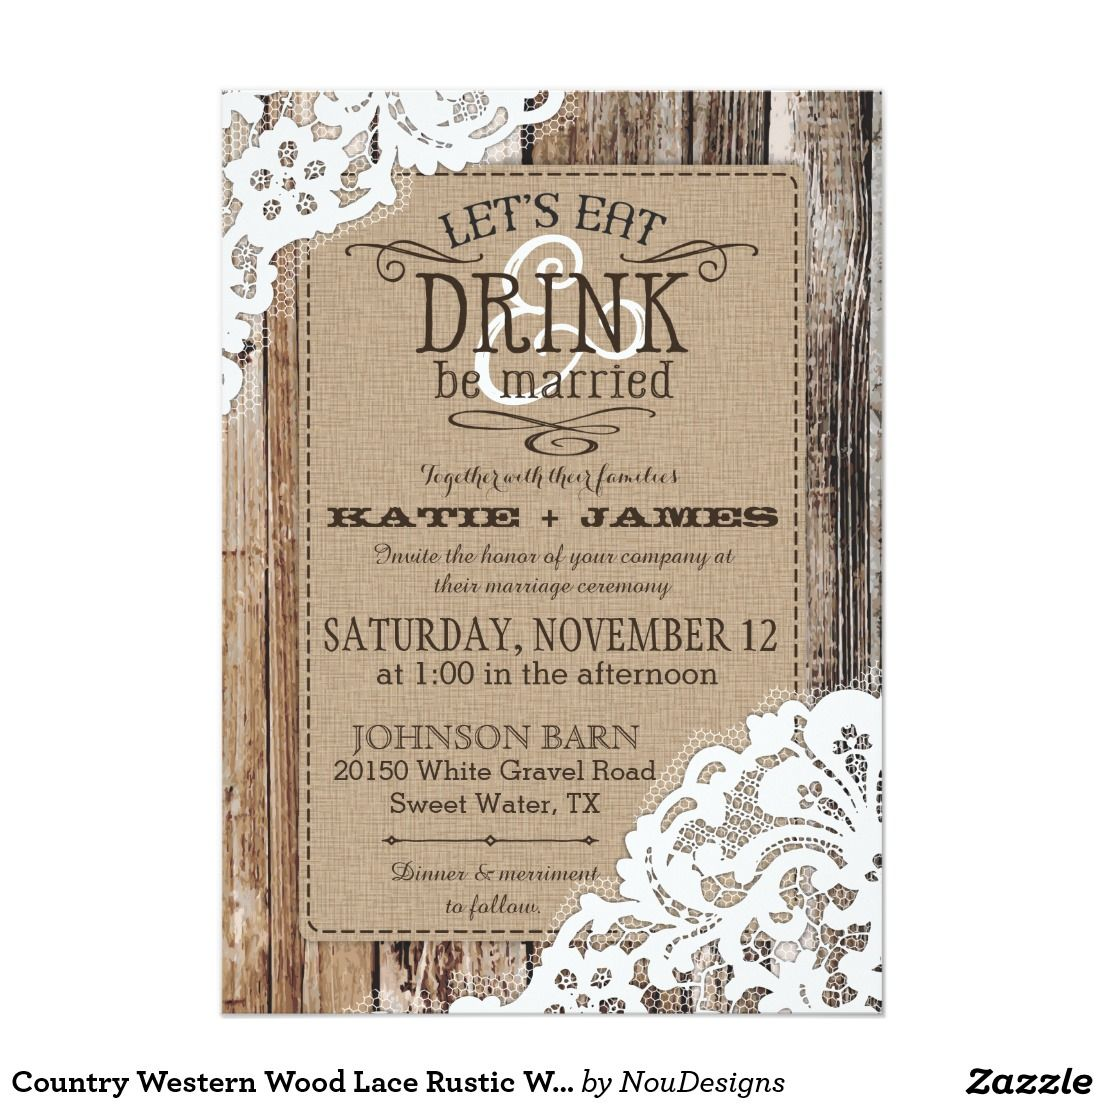 Country Western Wood Lace Rustic Wedding Card | Wedding card ...